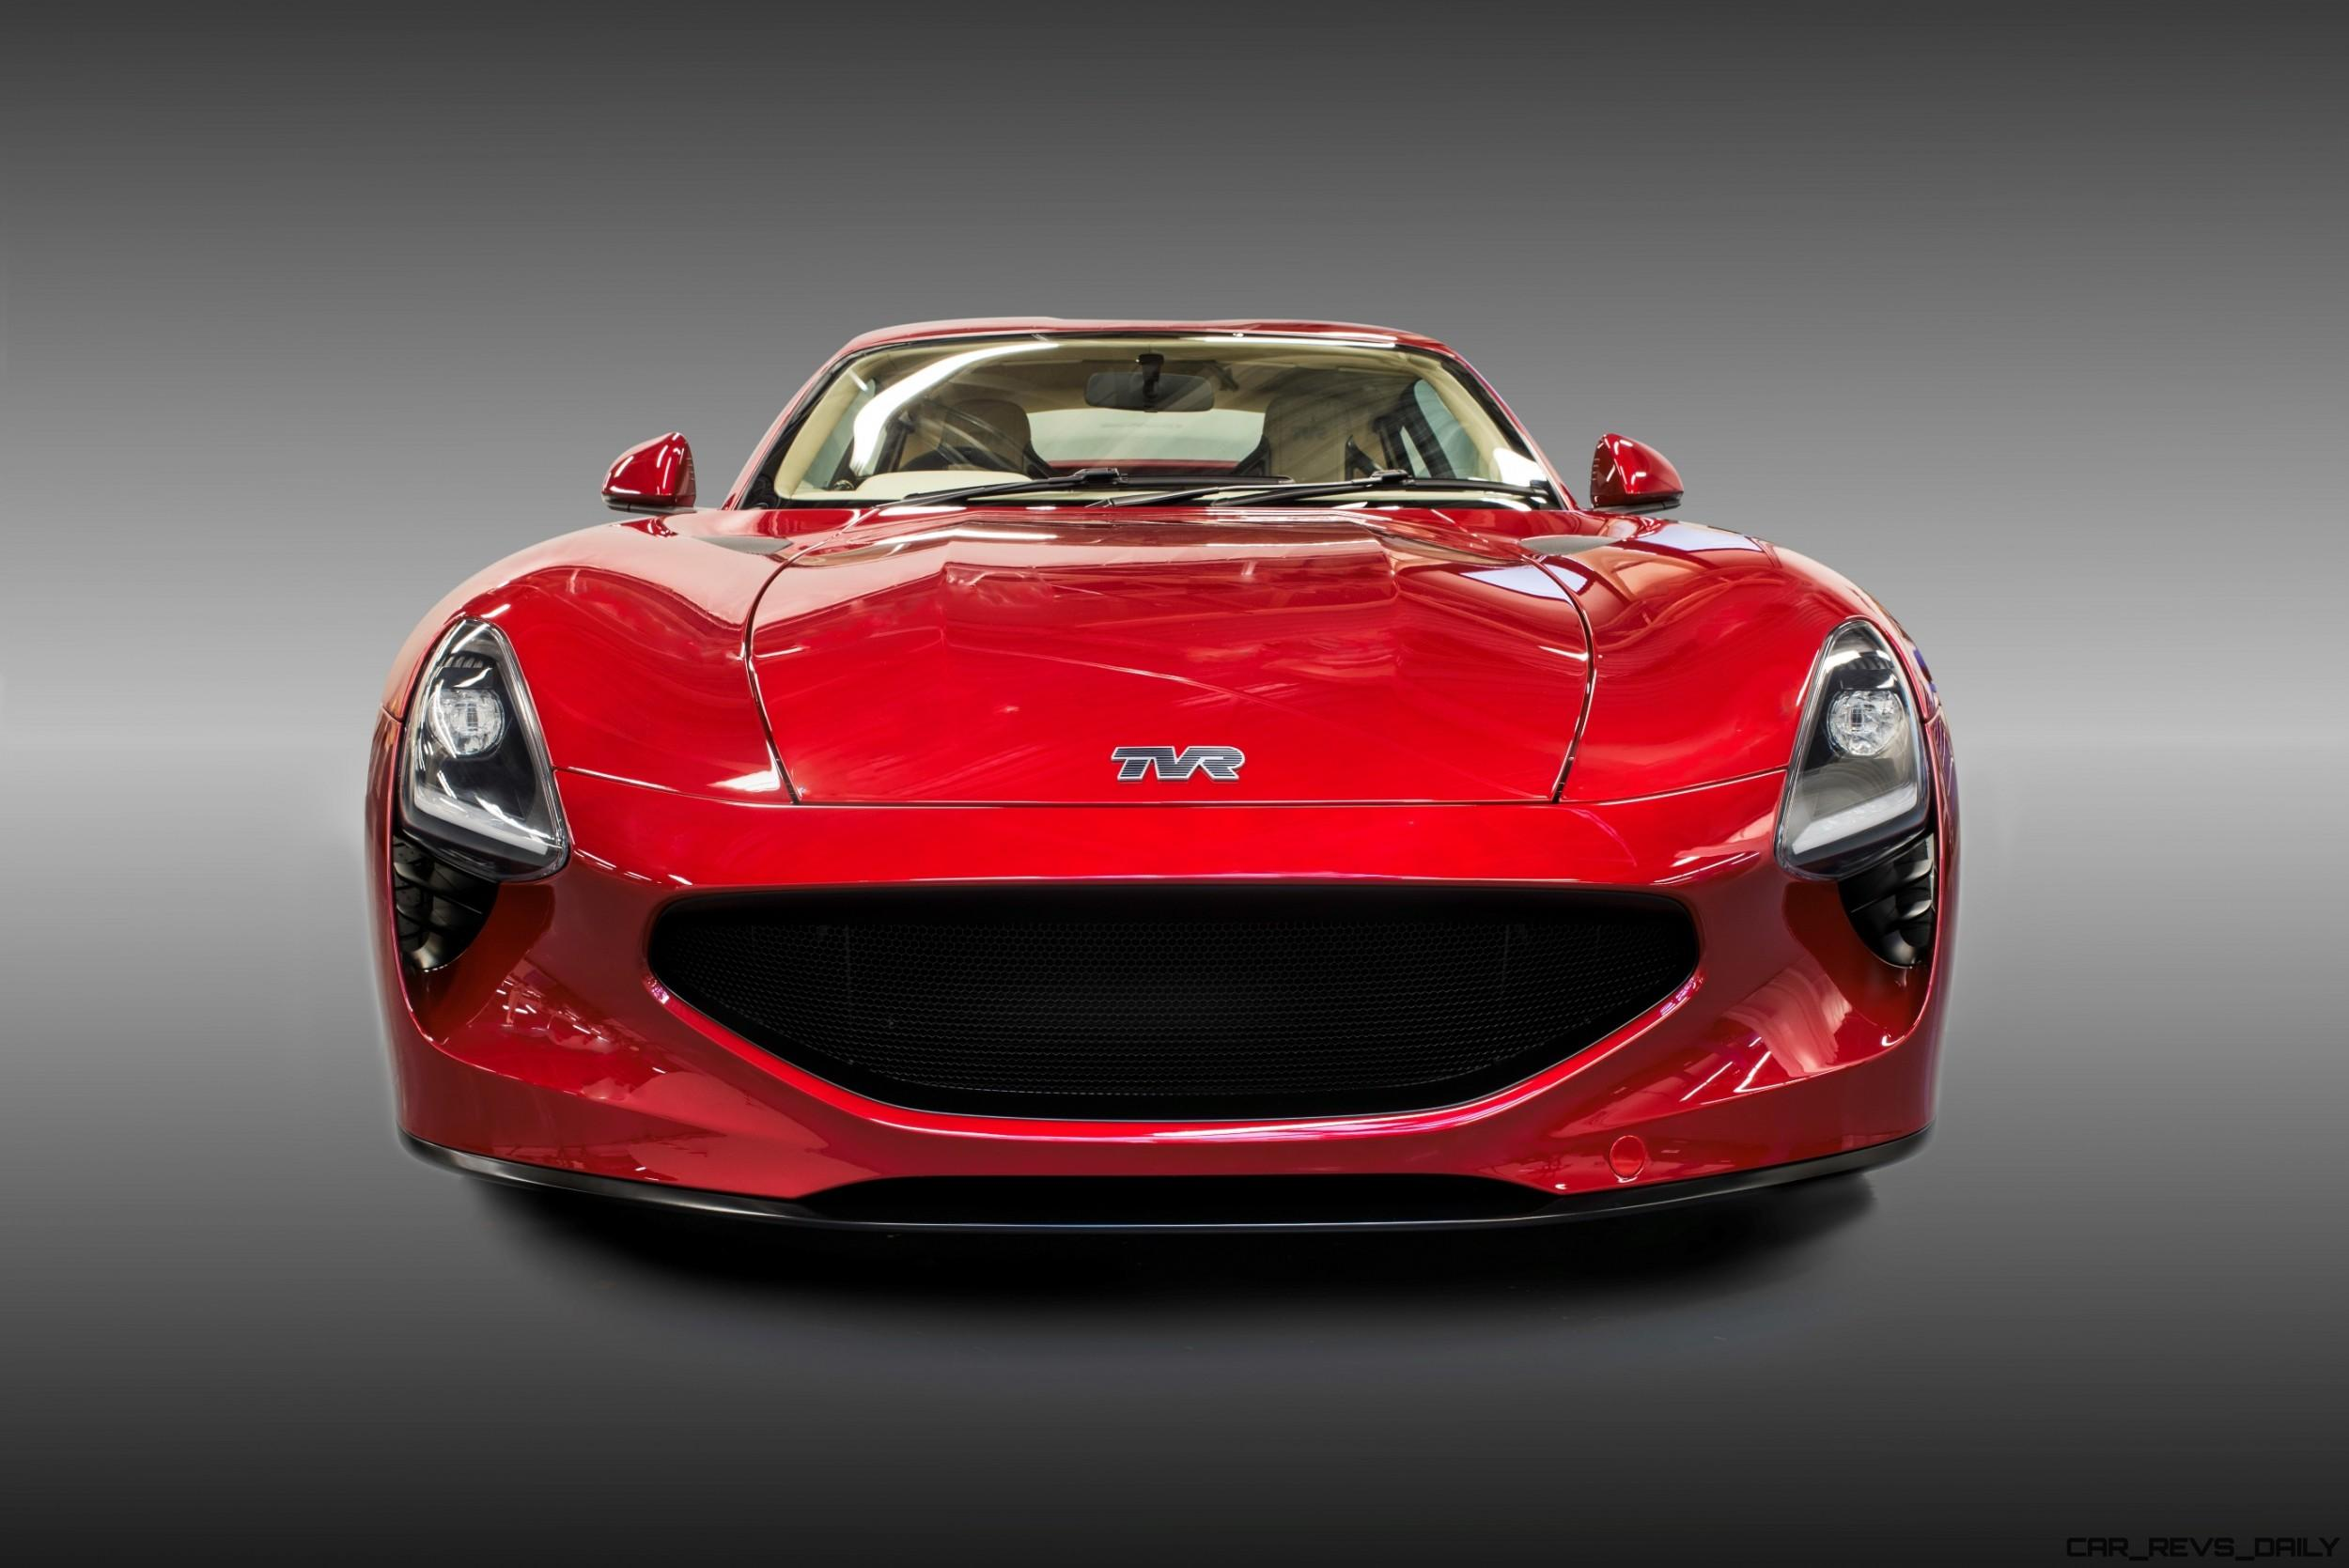 2018 tvr griffith gordon murray carbon supercar is real